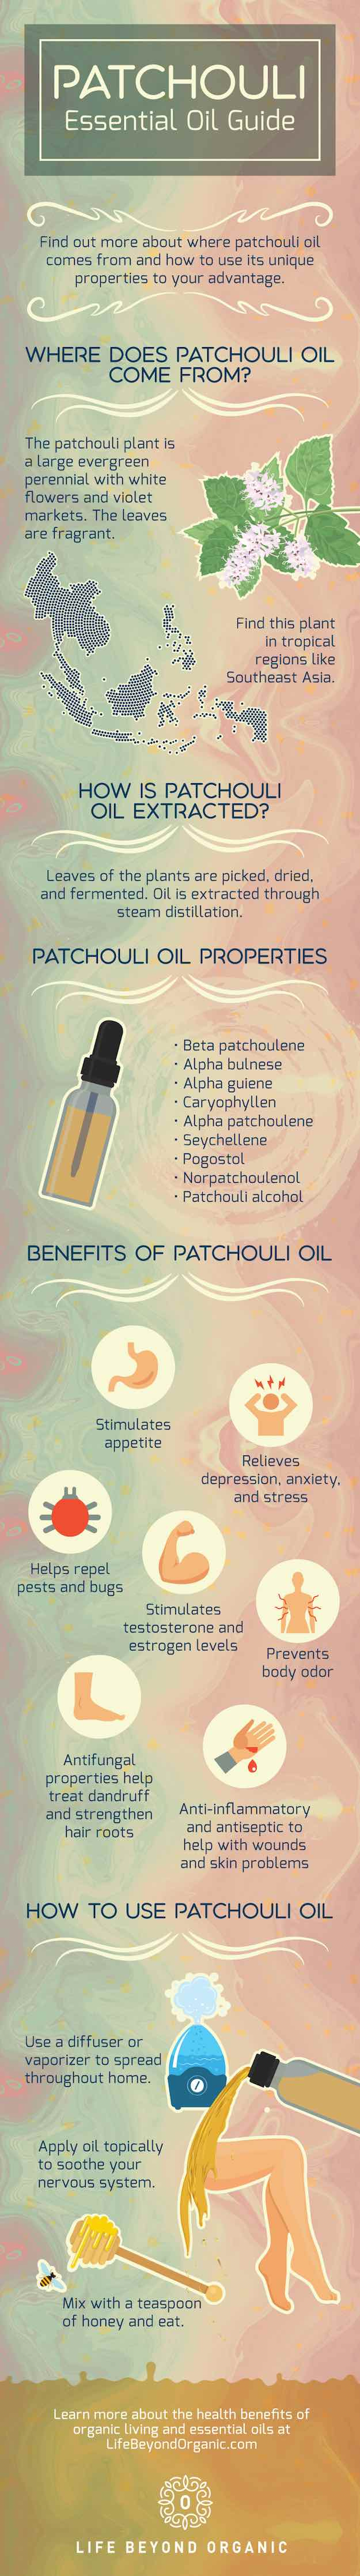 What Is Patchouli Oil? | Life Beyond Organic